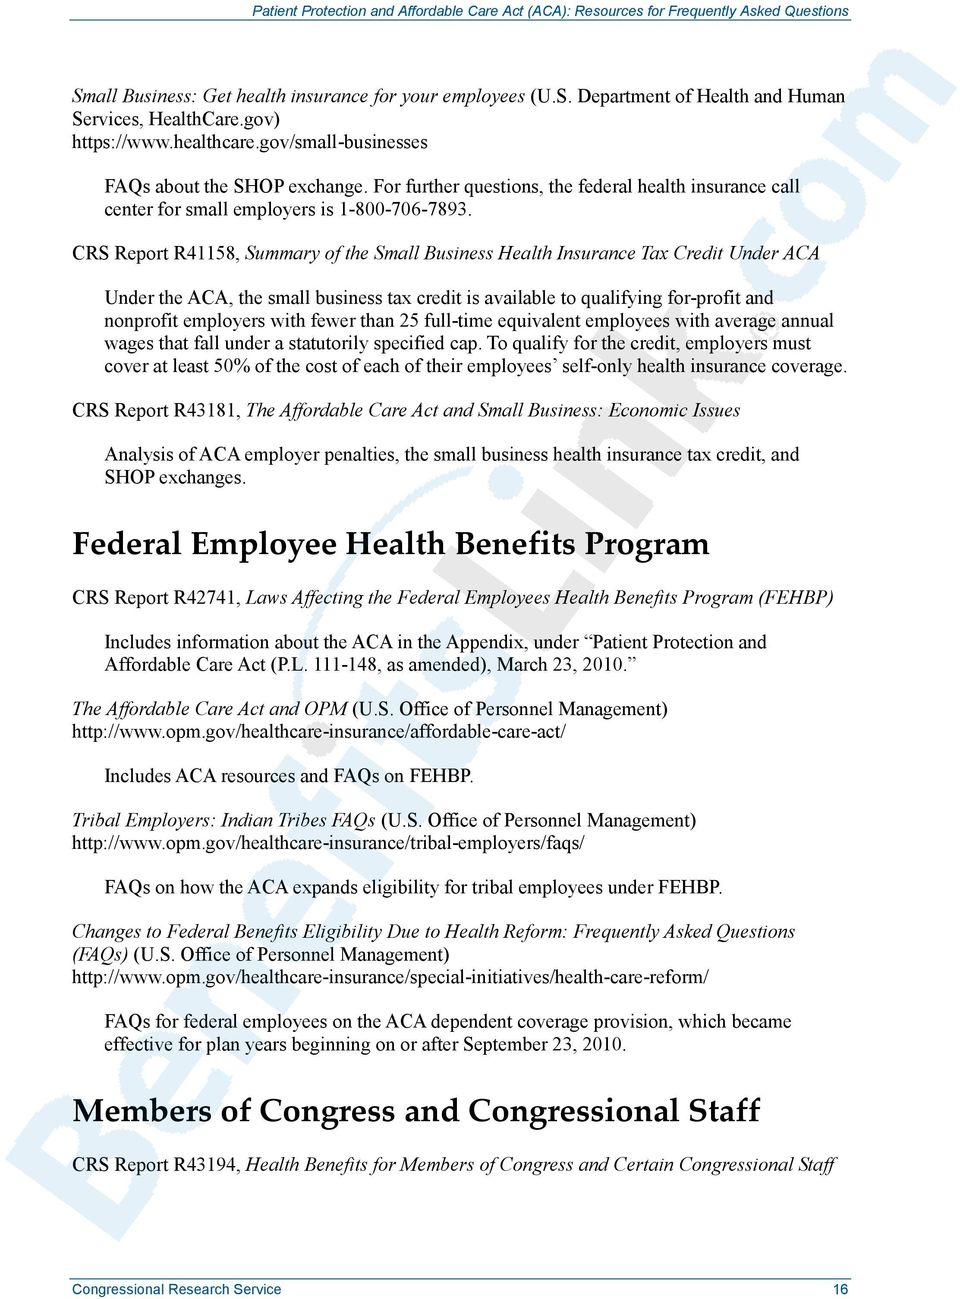 CRS Report R41158, Summary of the Small Business Health Insurance Tax Credit Under ACA Under the ACA, the small business tax credit is available to qualifying for-profit and nonprofit employers with